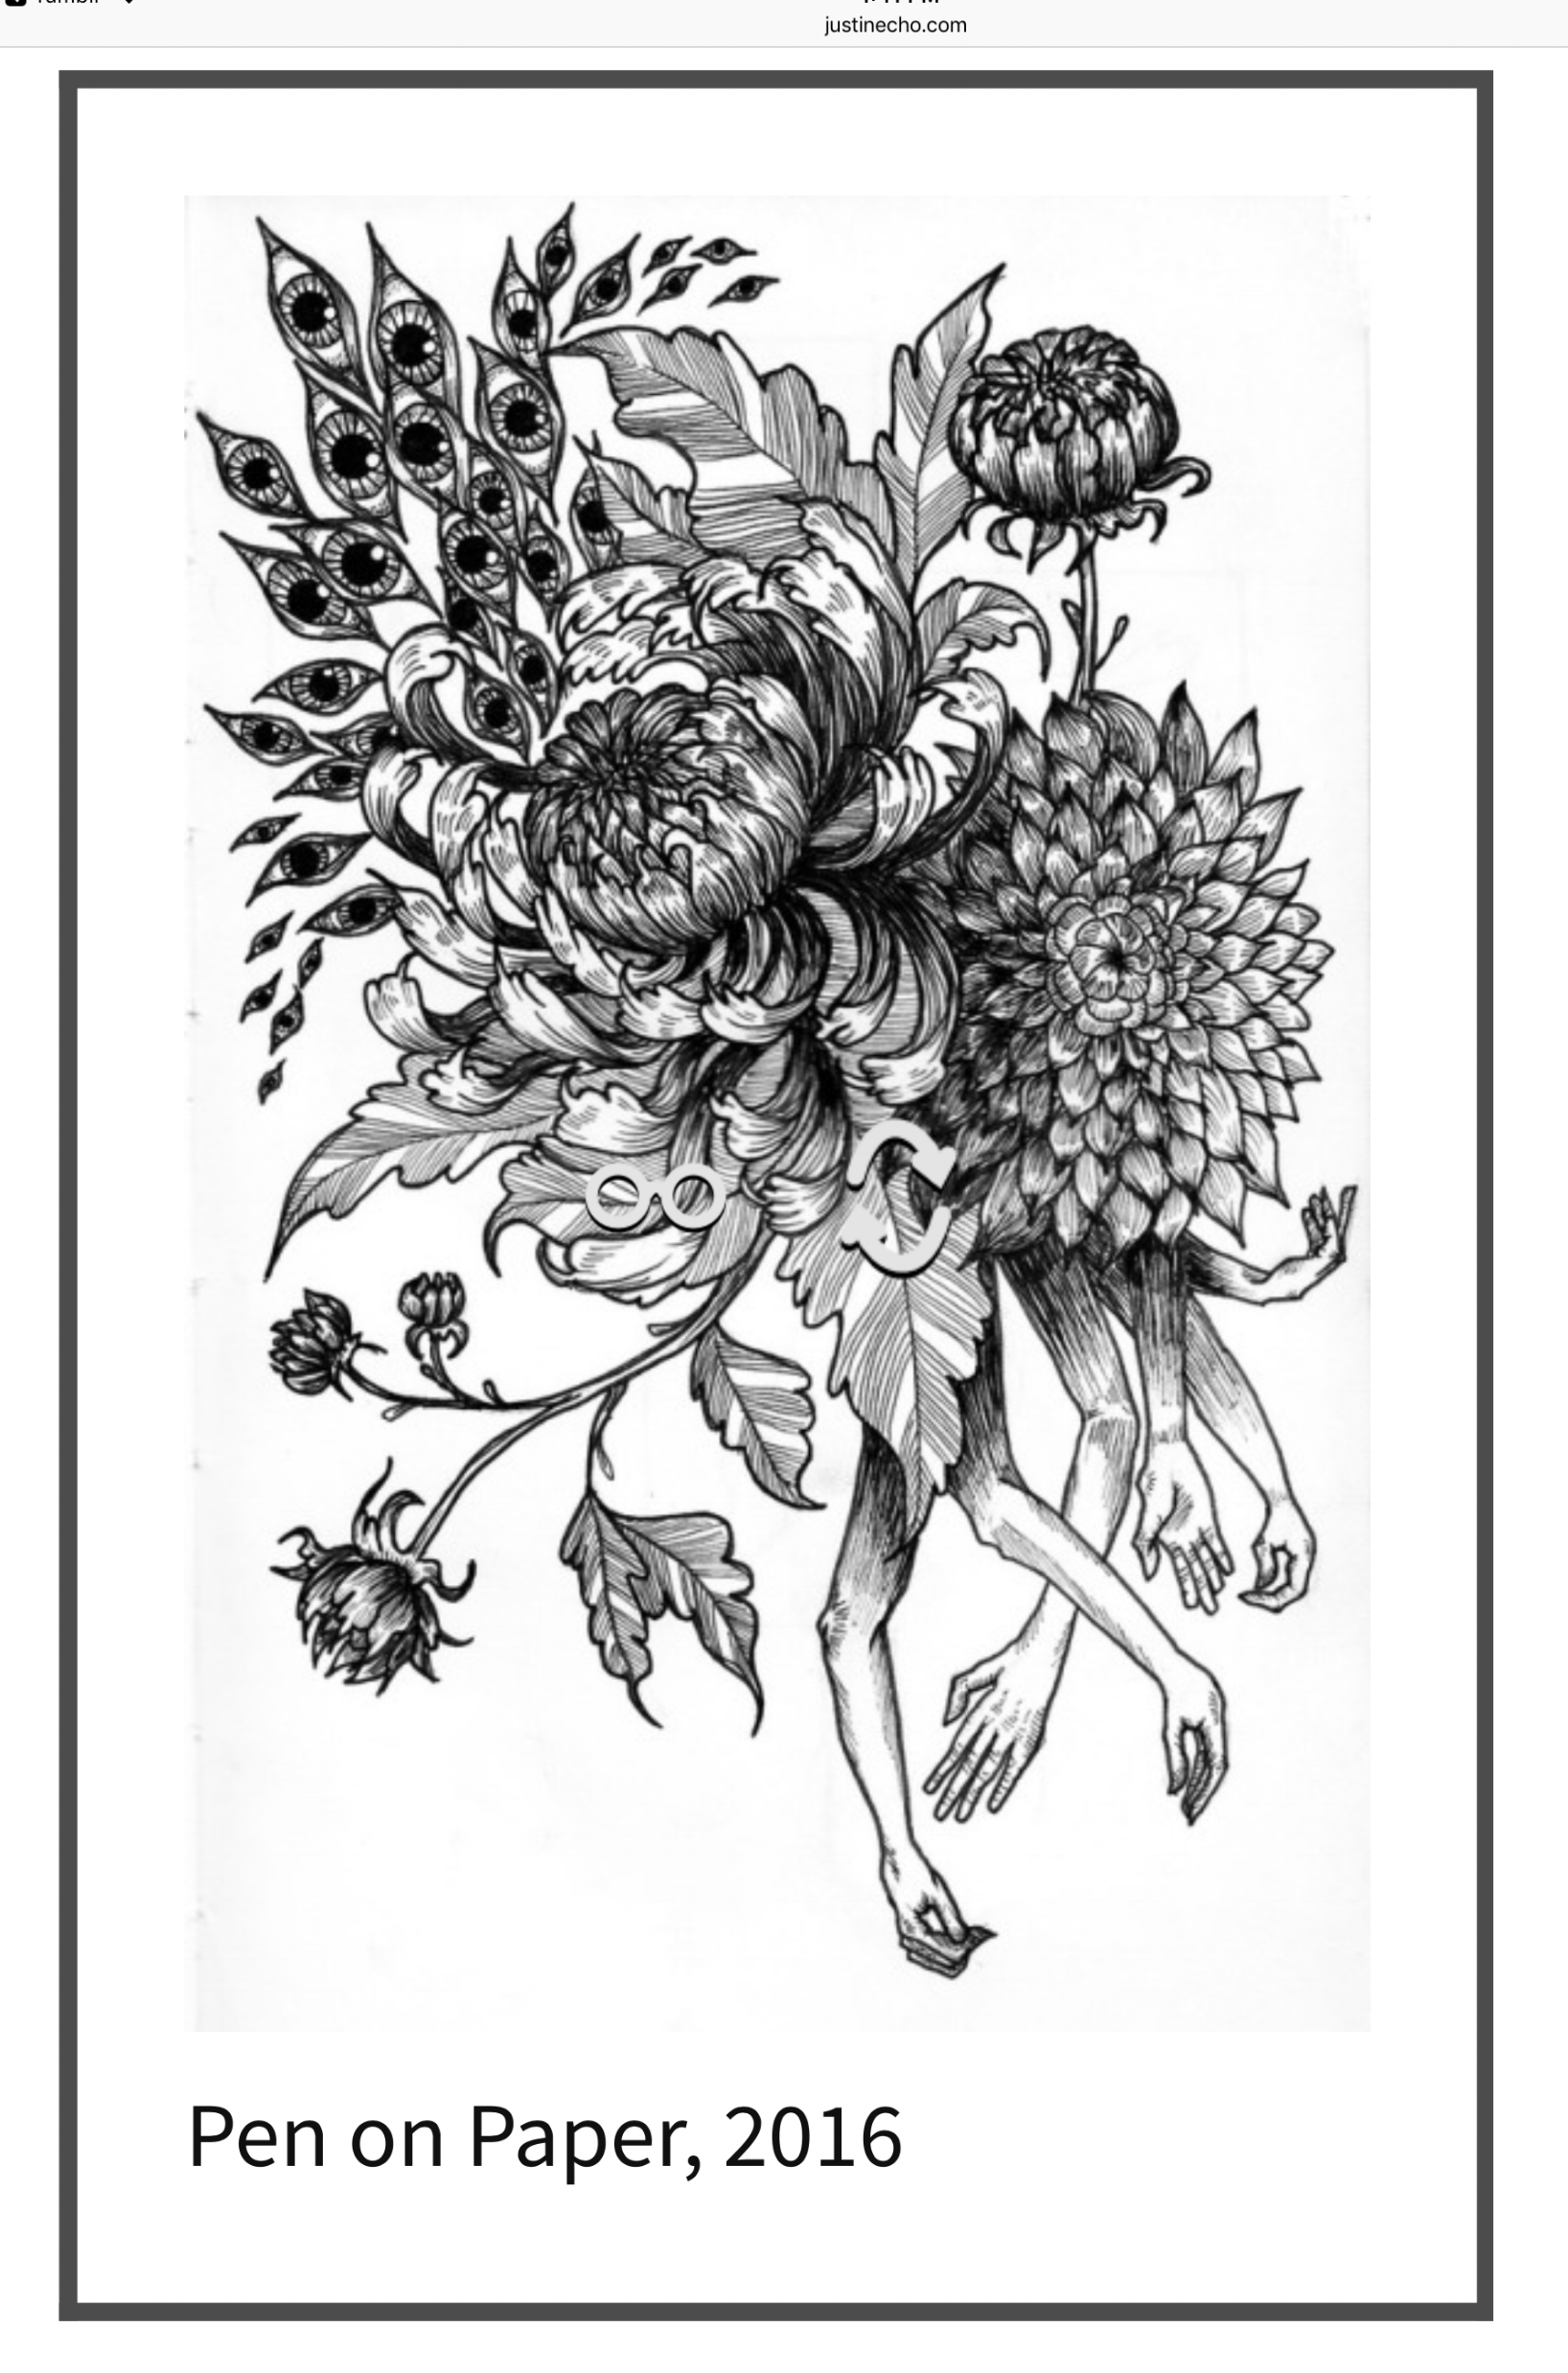 This piece was taken from my apprentice's portfolio website, www.justinecho.com. You can see she had a clear attention to detail and the subject matter would be easily translated into a tattoo. She also has a degree in fine art and a full portfolio of work.